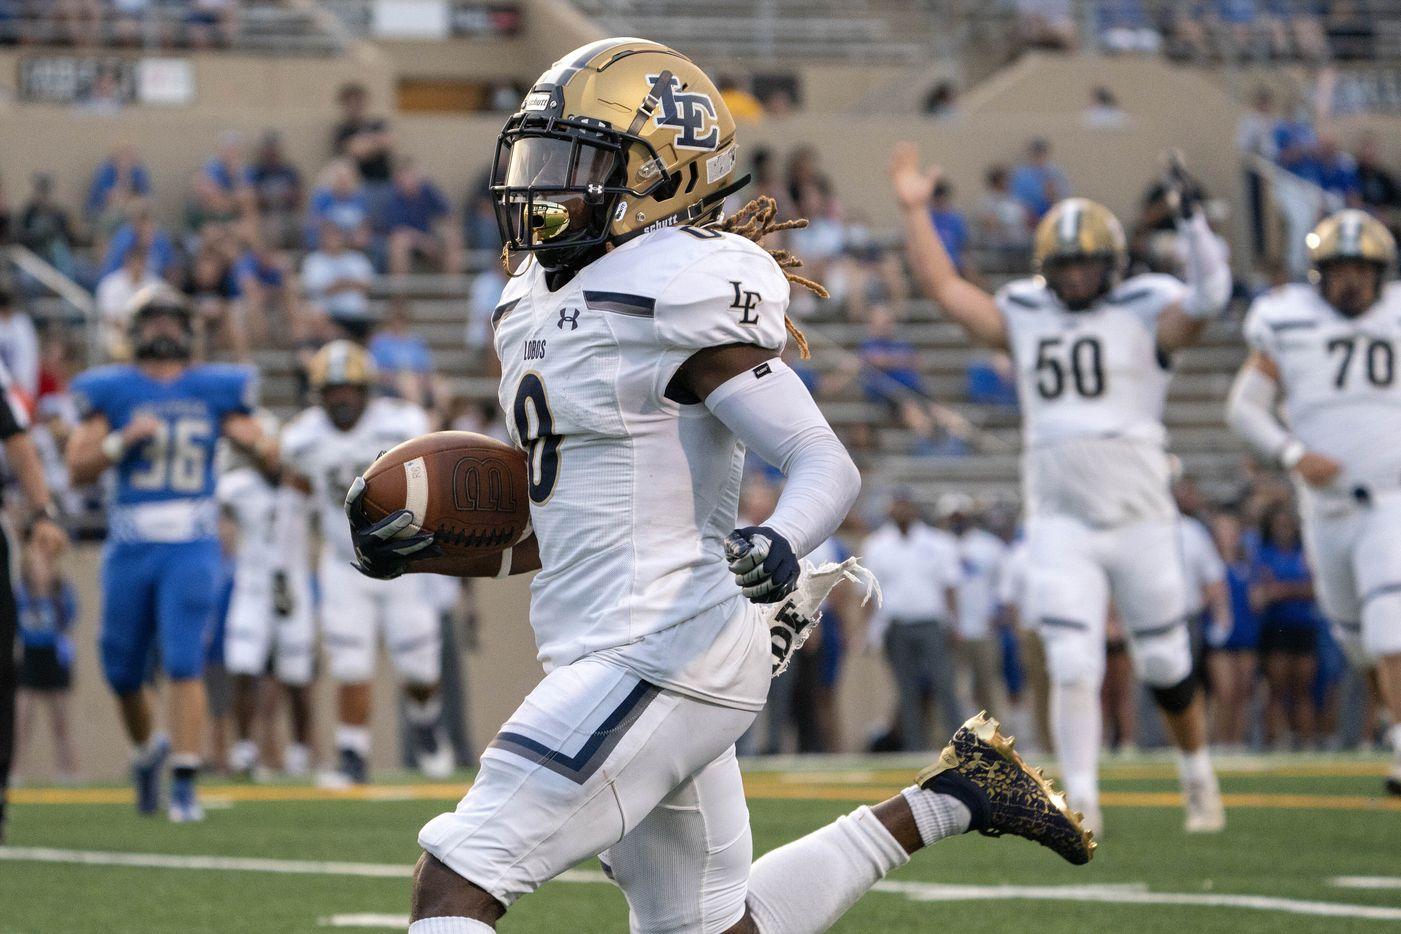 Little Elm senior wide receiver Cameran Taylor-Butler runs in for a touchdown during the first half of a high school football game against Plano West on Friday, Sept. 10, 2021 at John Clark Stadium in Plano, Texas. (Jeffrey McWhorter/Special Contributor)